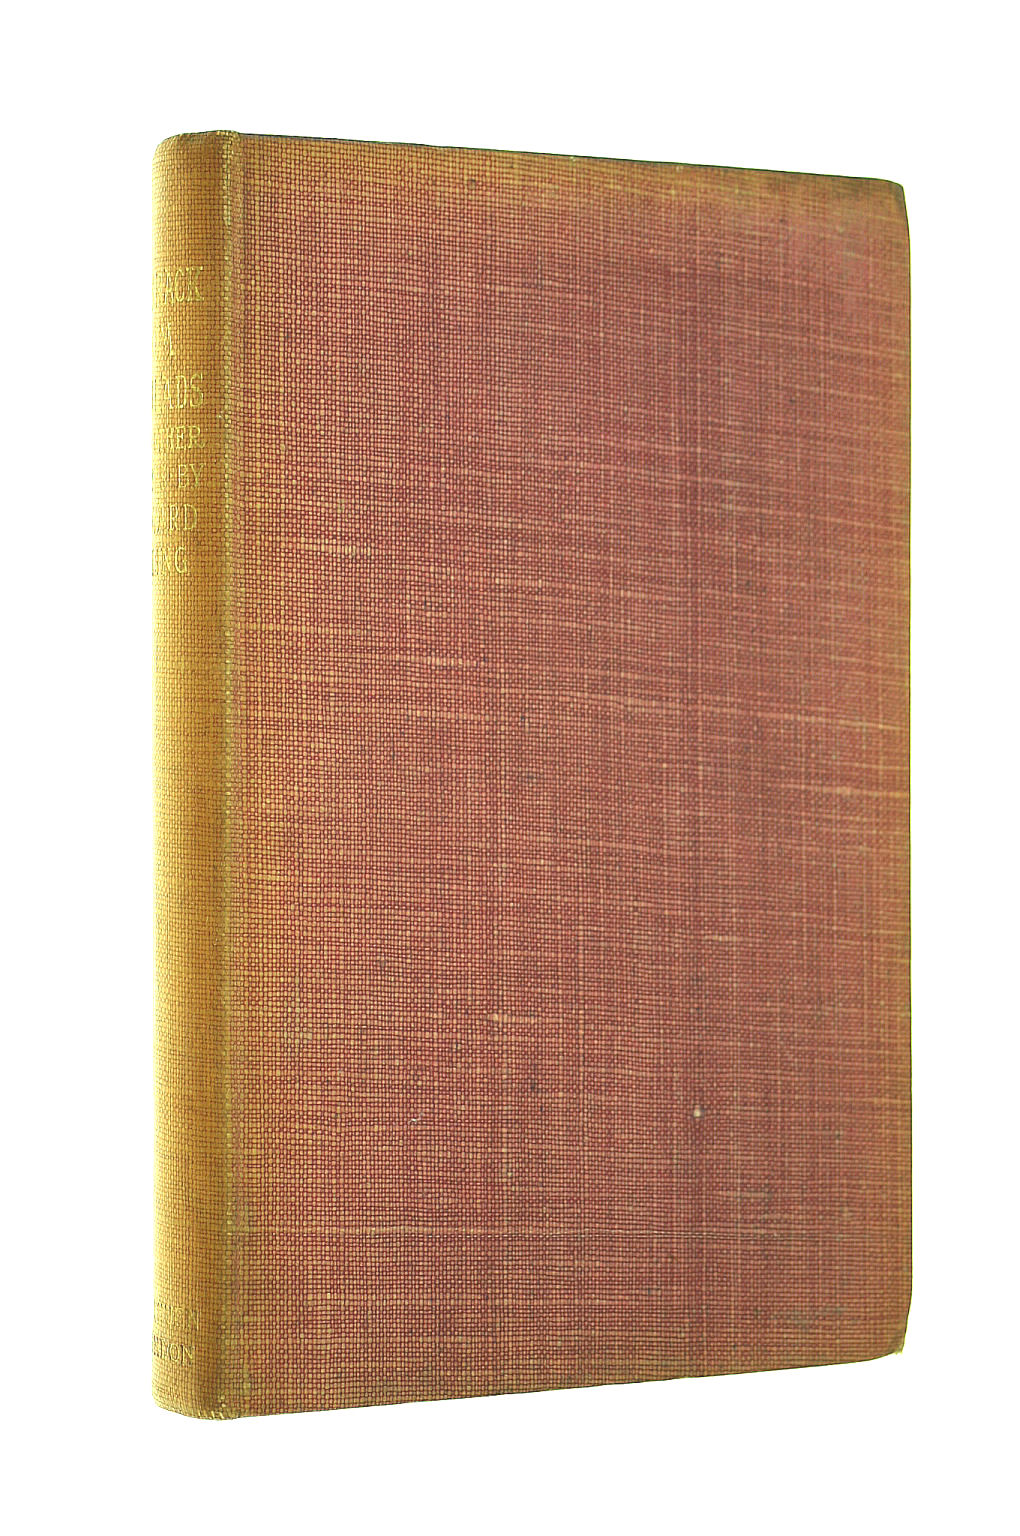 KIPLING, R - Barrack-room ballads and other verses (The English library)